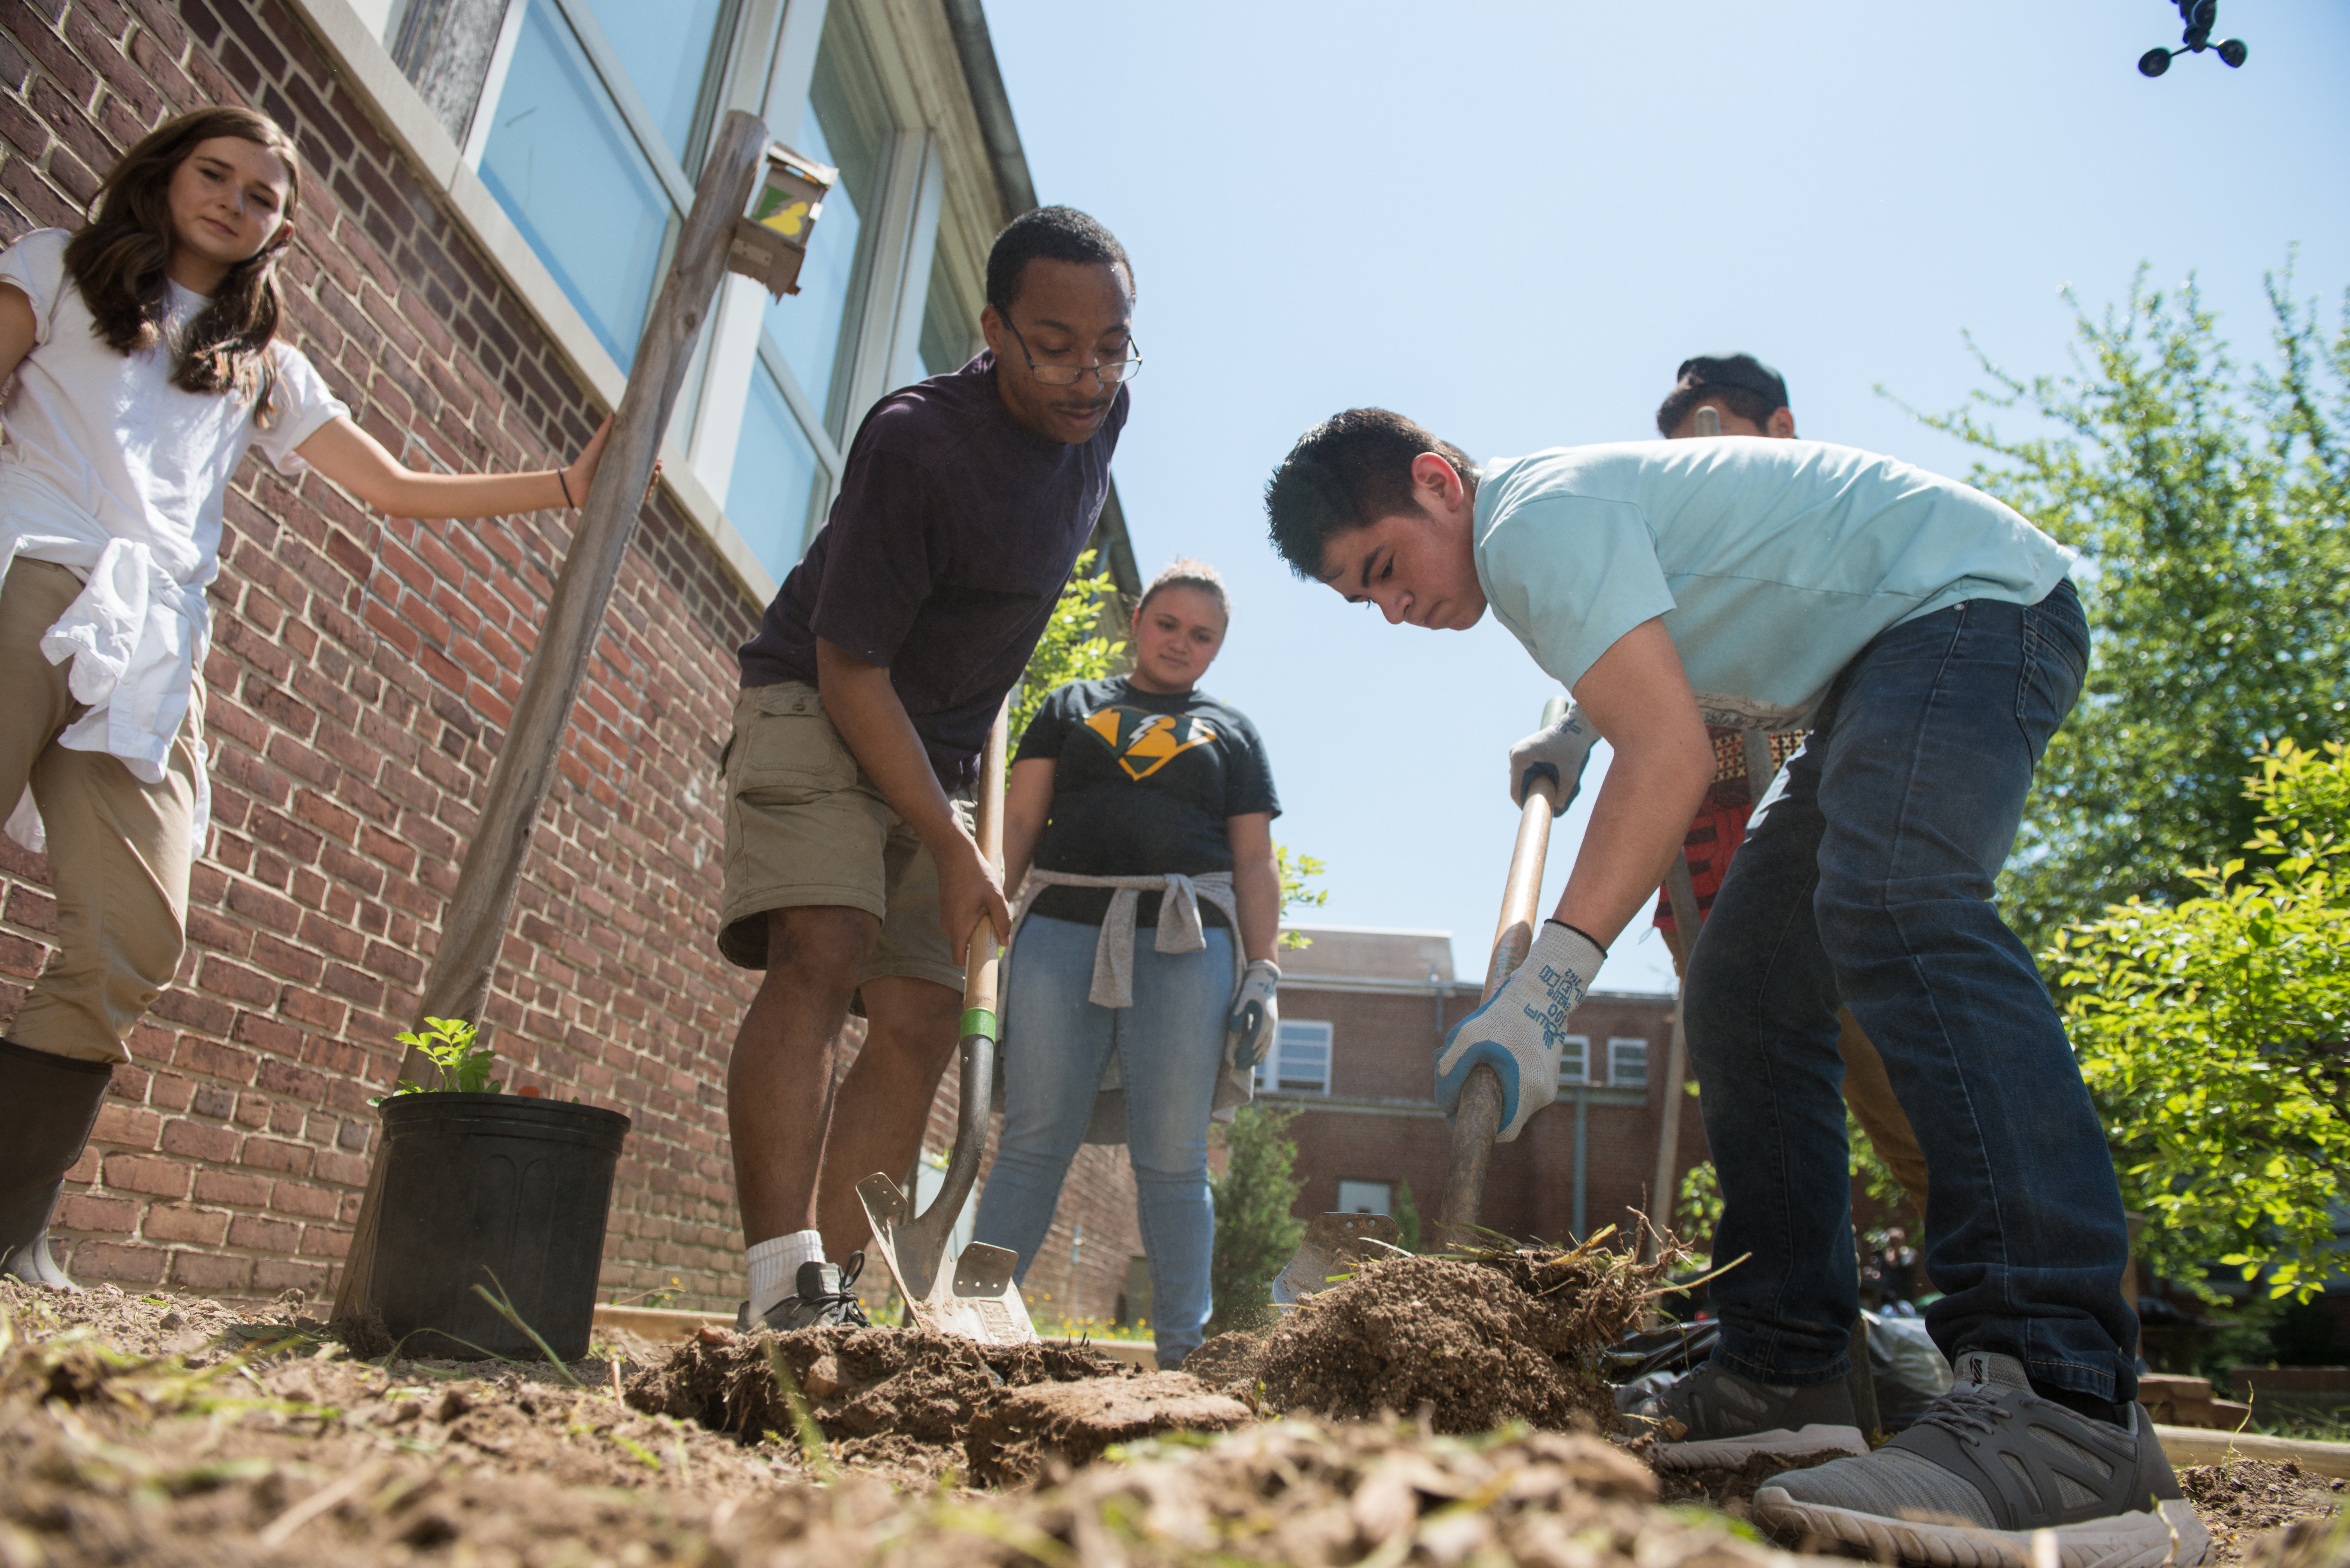 Three people watch as two males dig holes in the dirt to make a monarch garden